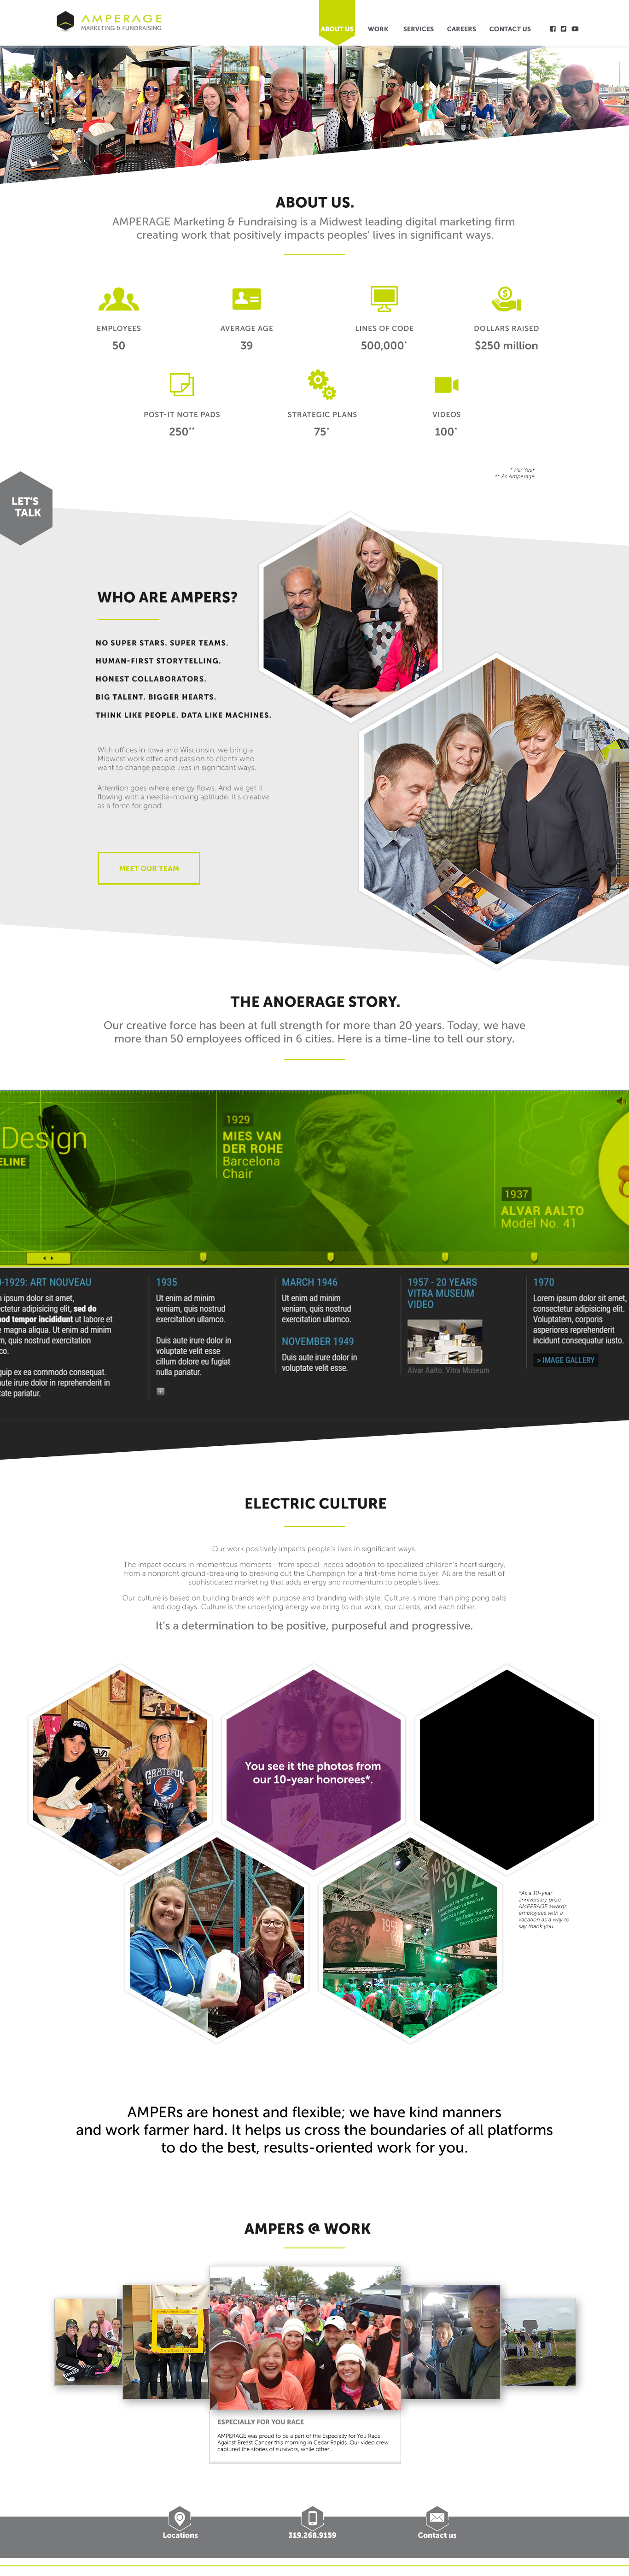 AMPERAGE About Us Subpage